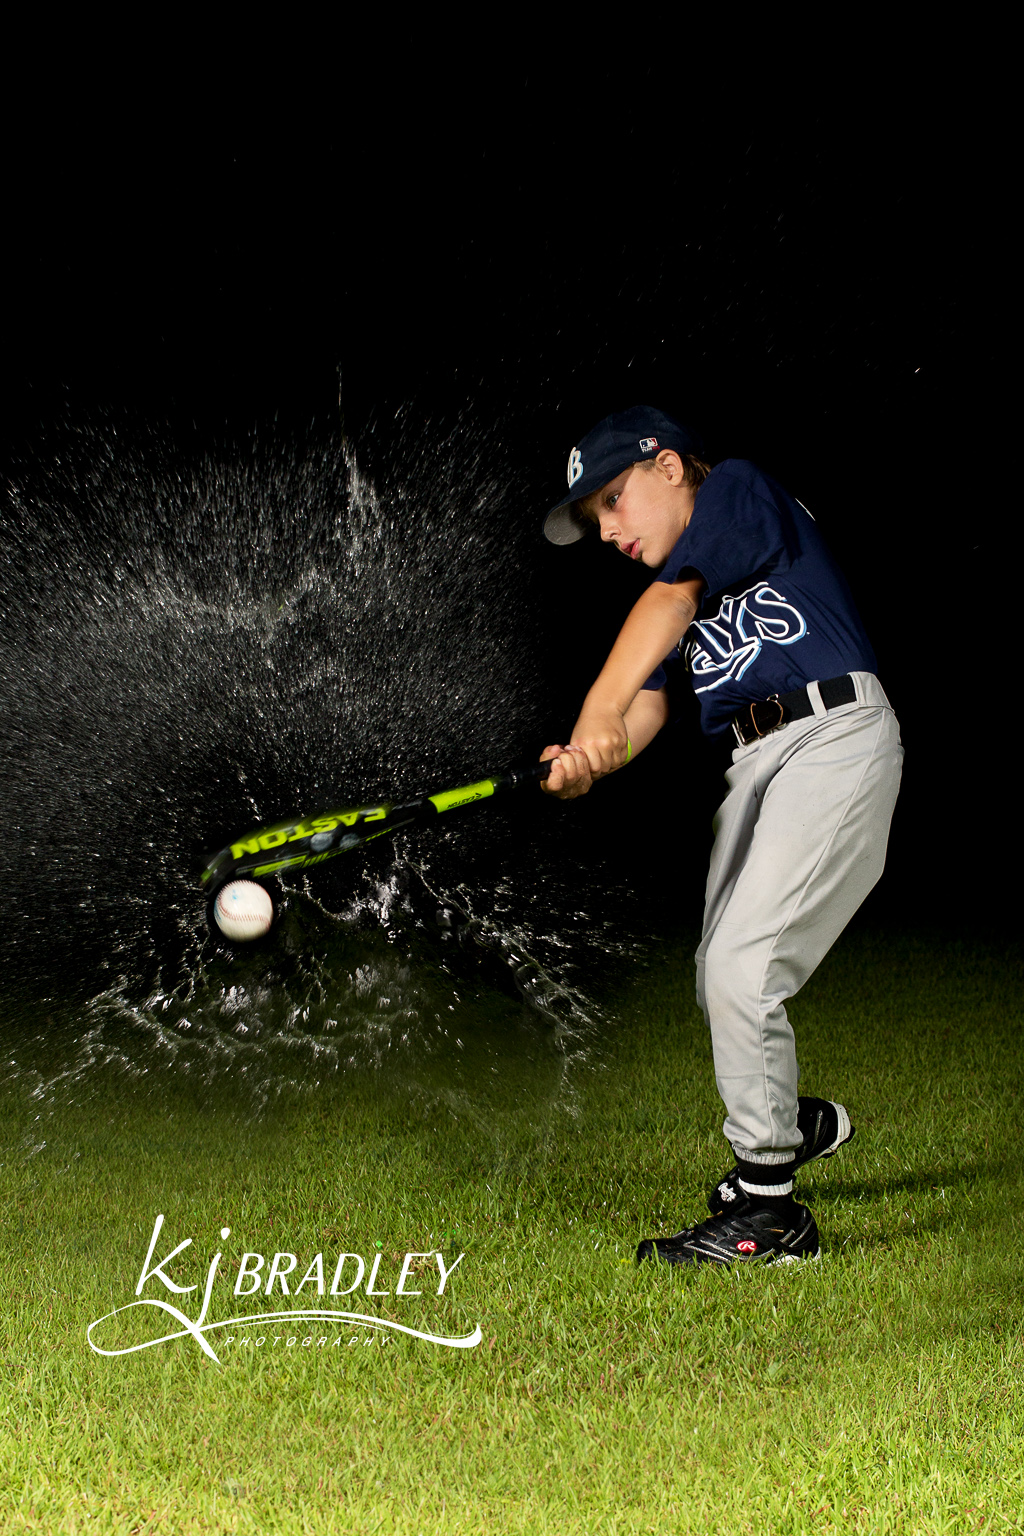 Baseball_splash_photo_KJ_Bradley_Photography